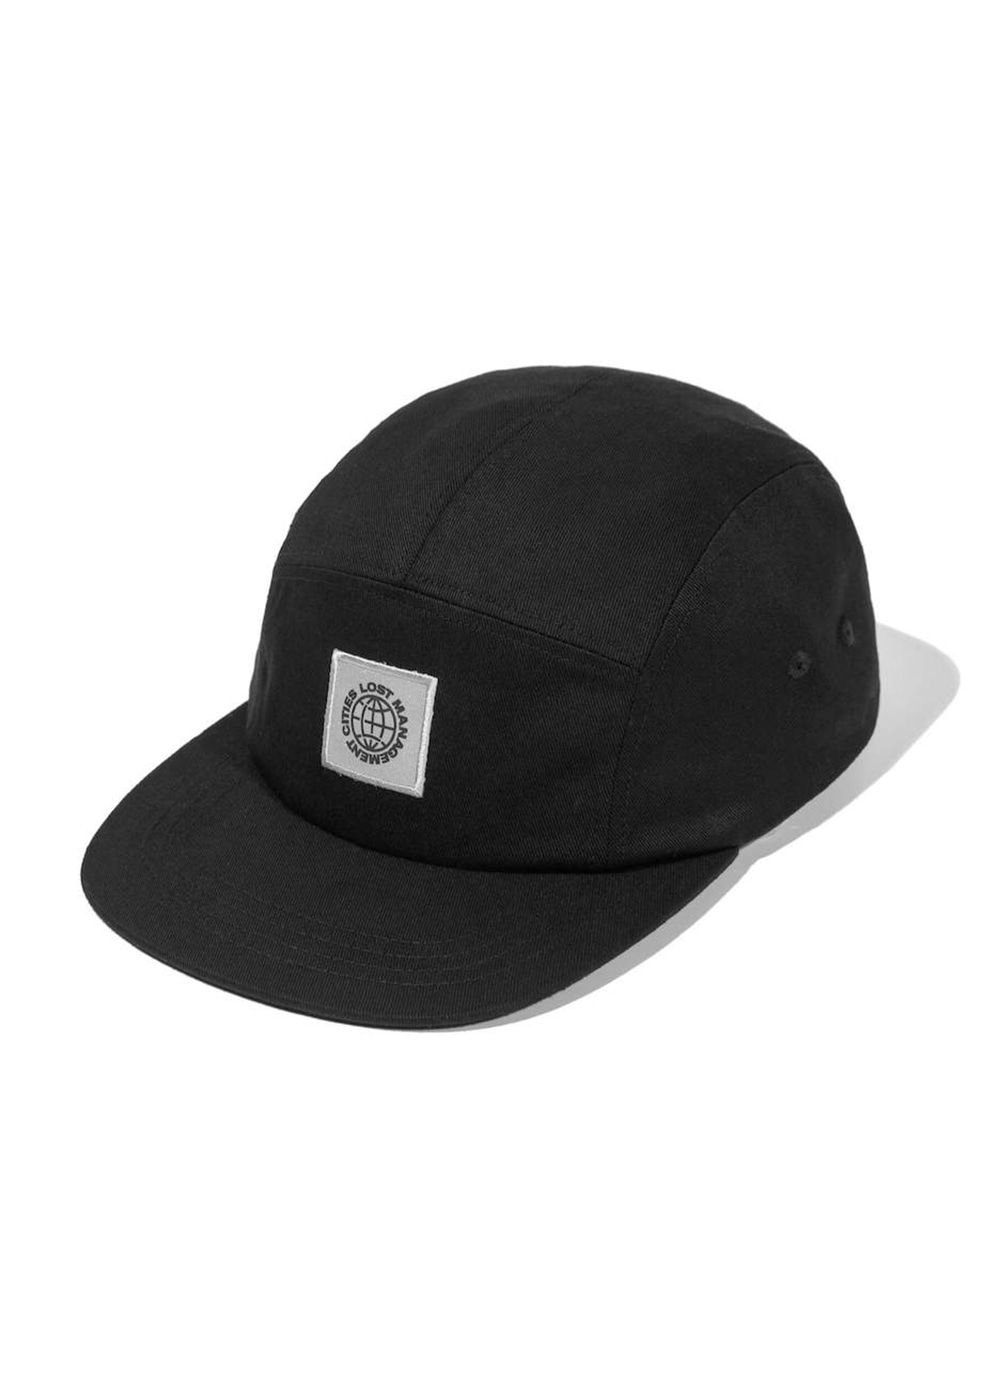 LMC RFLCTV PATCH CAMP CAP black